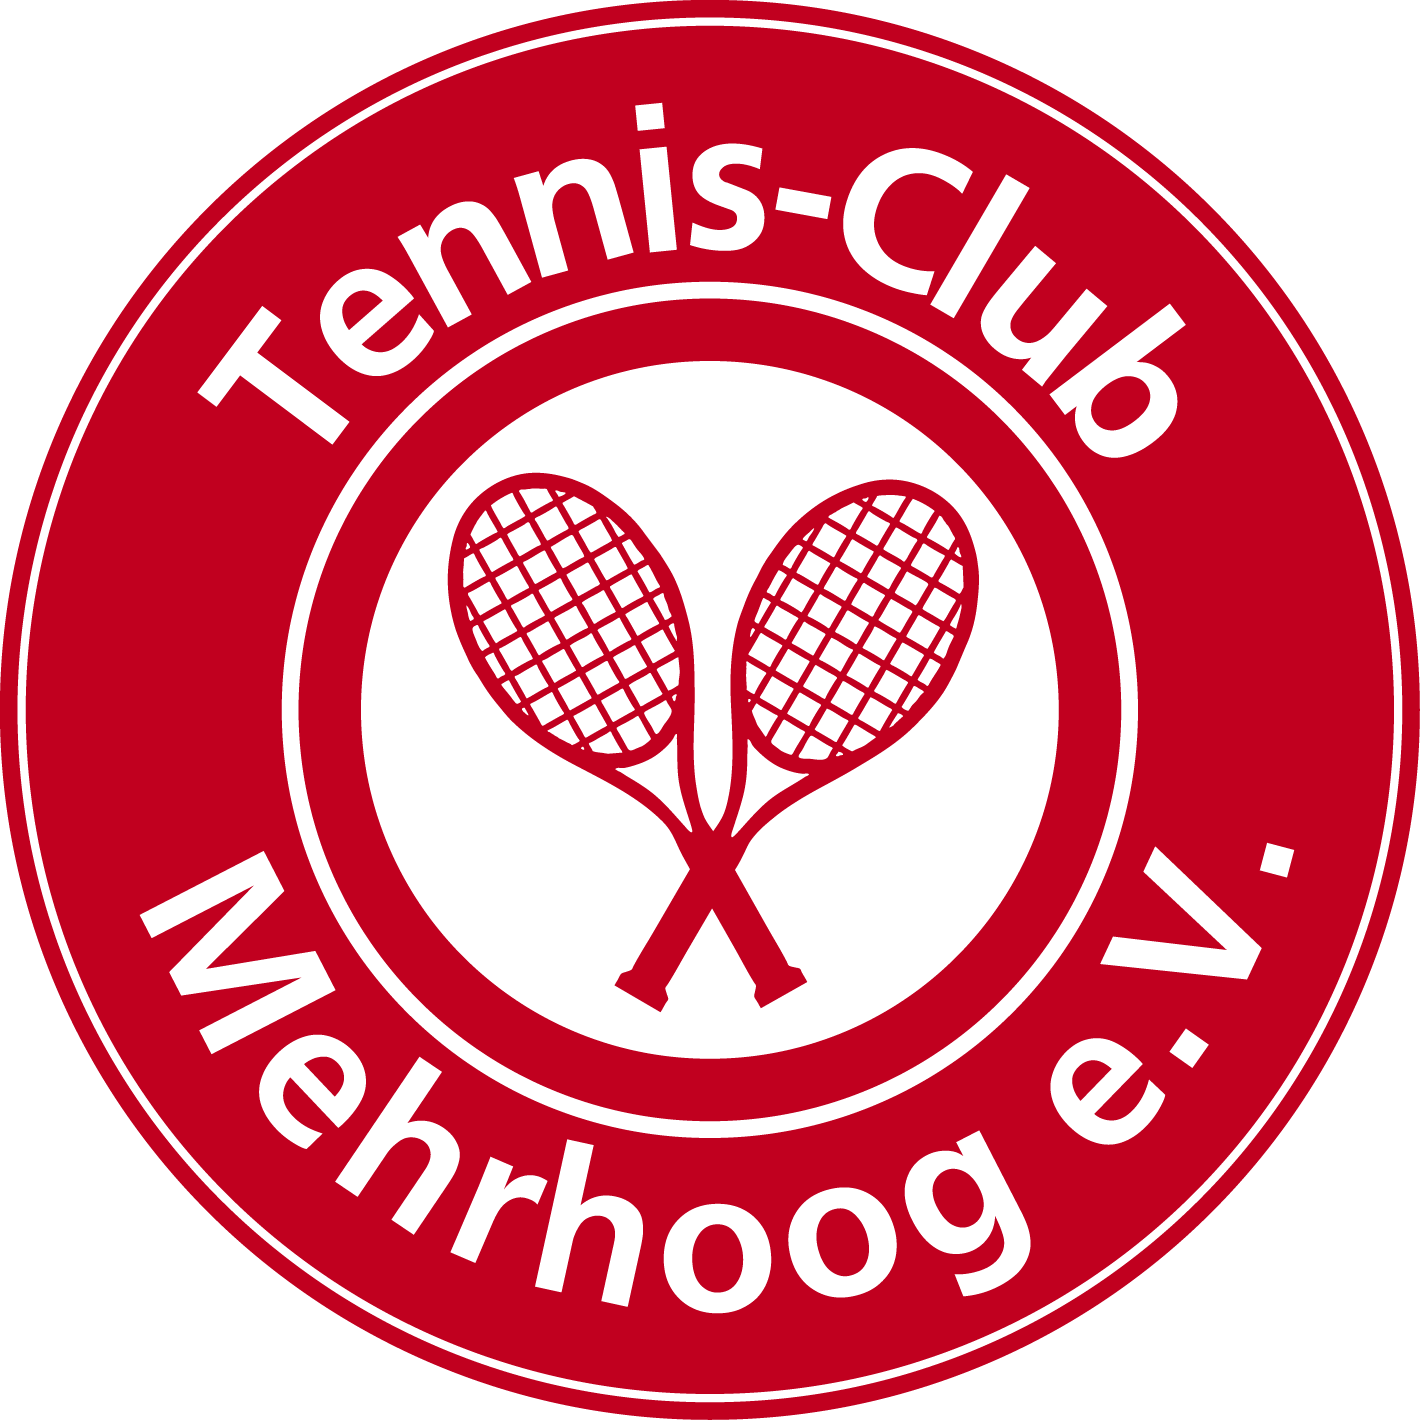 Tennis Club Mehrhoog